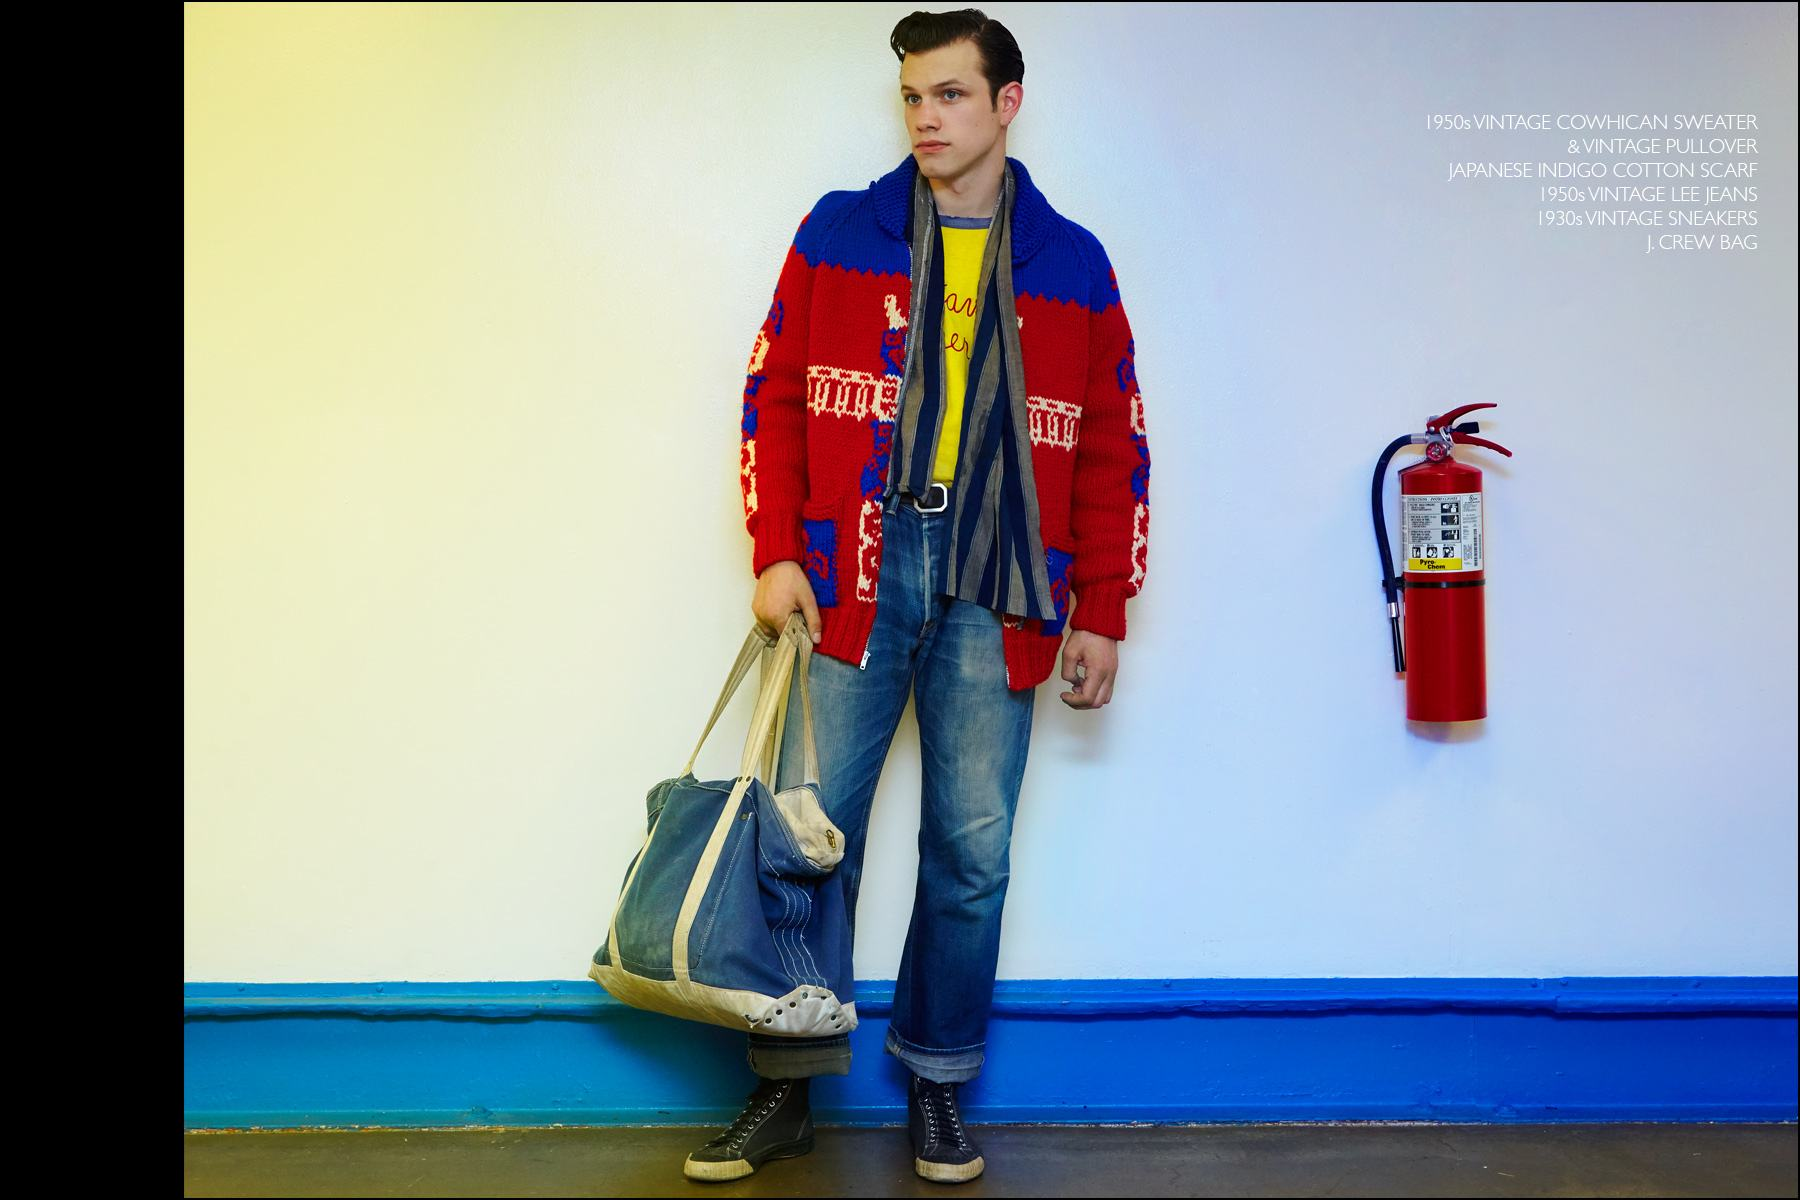 Rockabilly drummer Ben Heymann, from band The Bothers, photographed in vintage clothing from New York City showroom Dated Vintage. Photographed by Alexander Thompson for Ponyboy magazine NY.